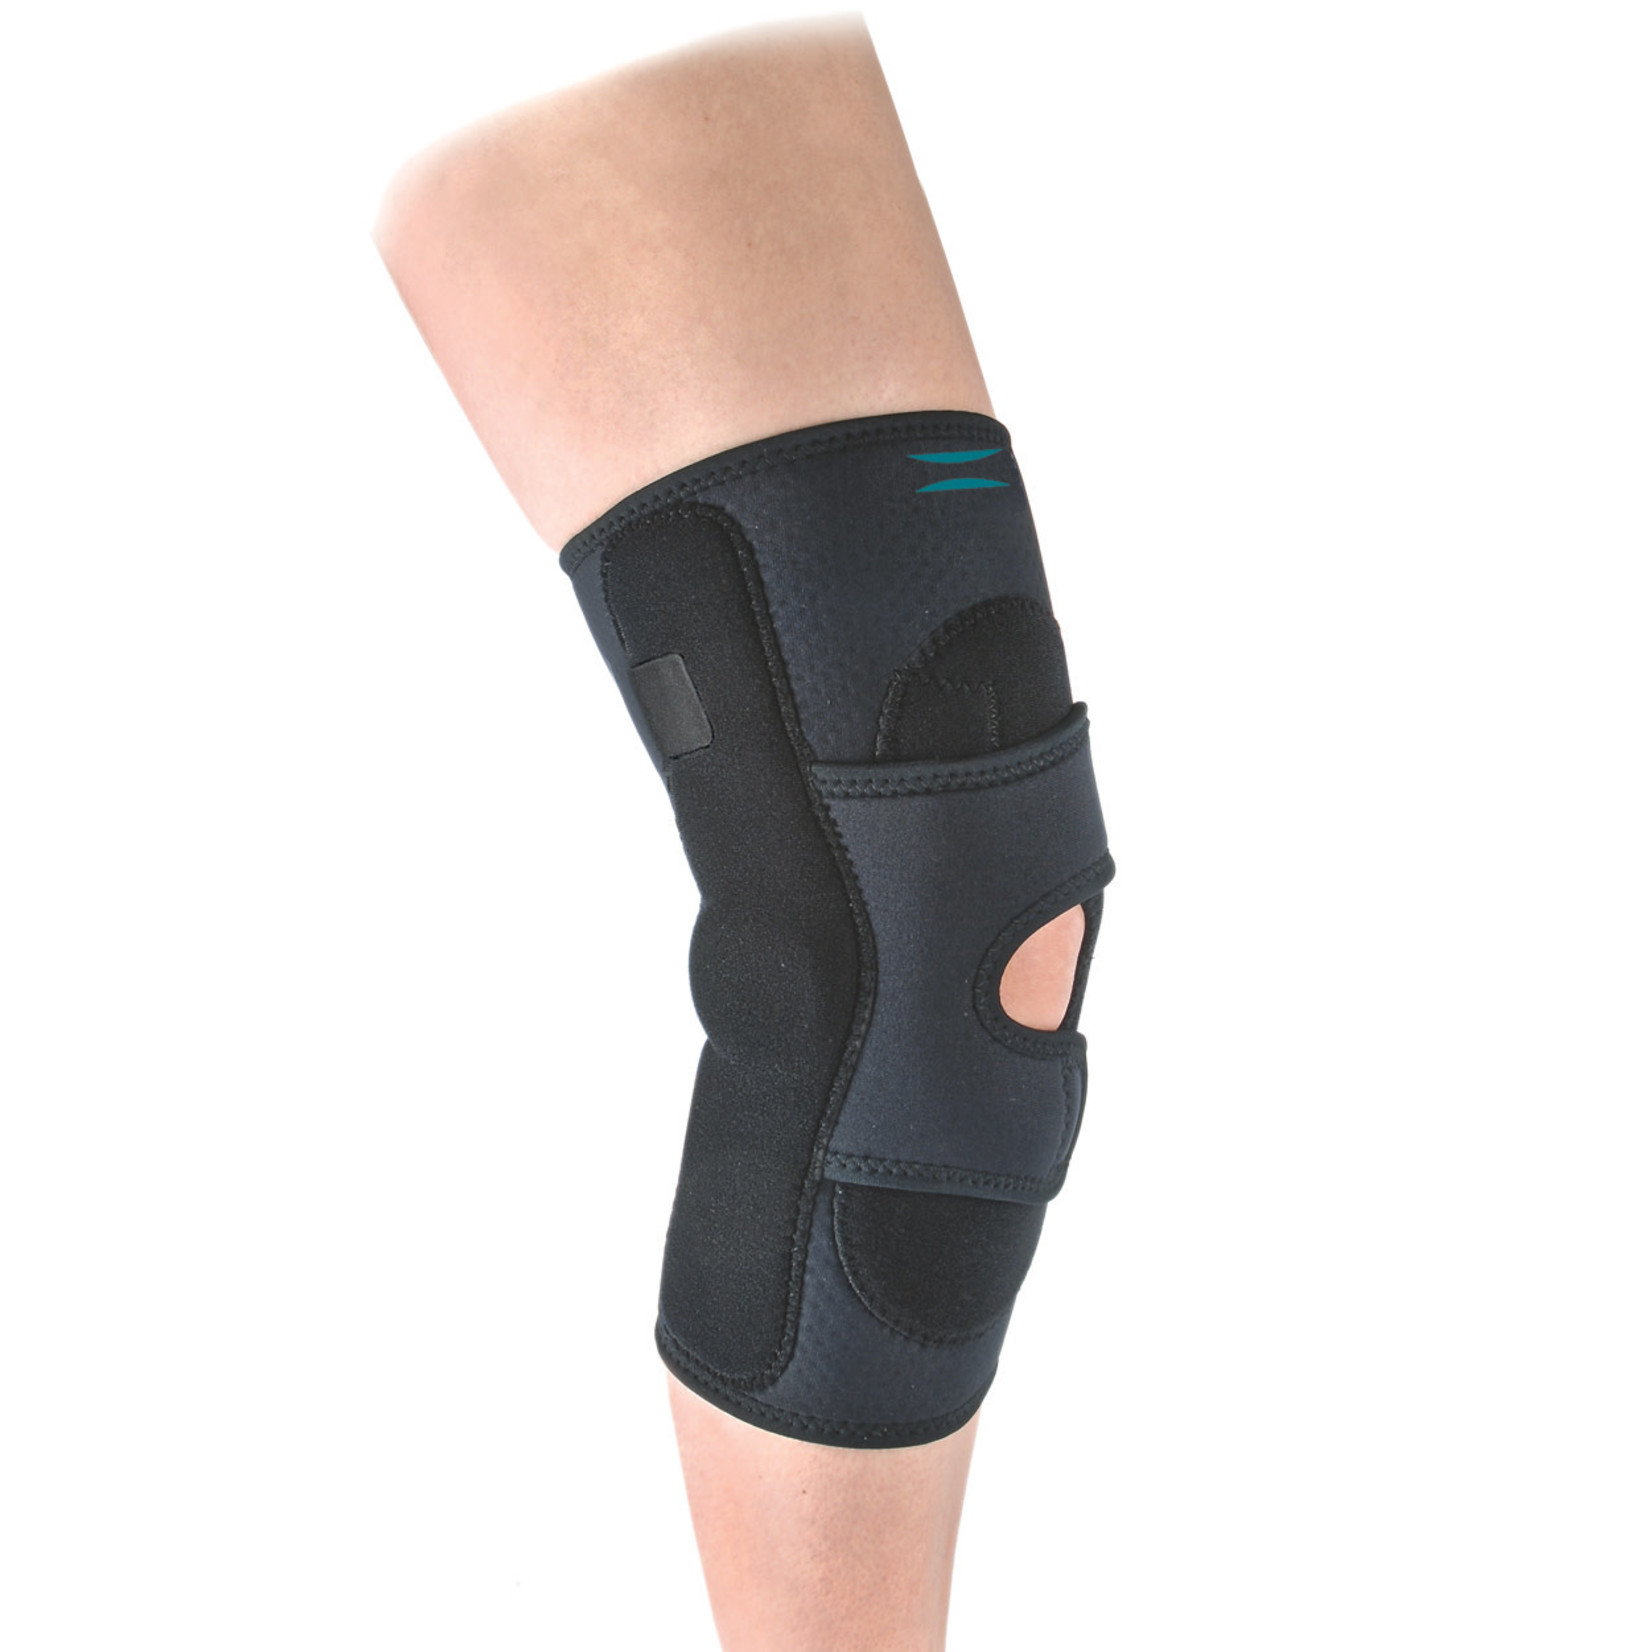 Hely & Weber HINGED LATERAL J STABILIZER - OPEN POPLITEAL W/CONDYLE PADS